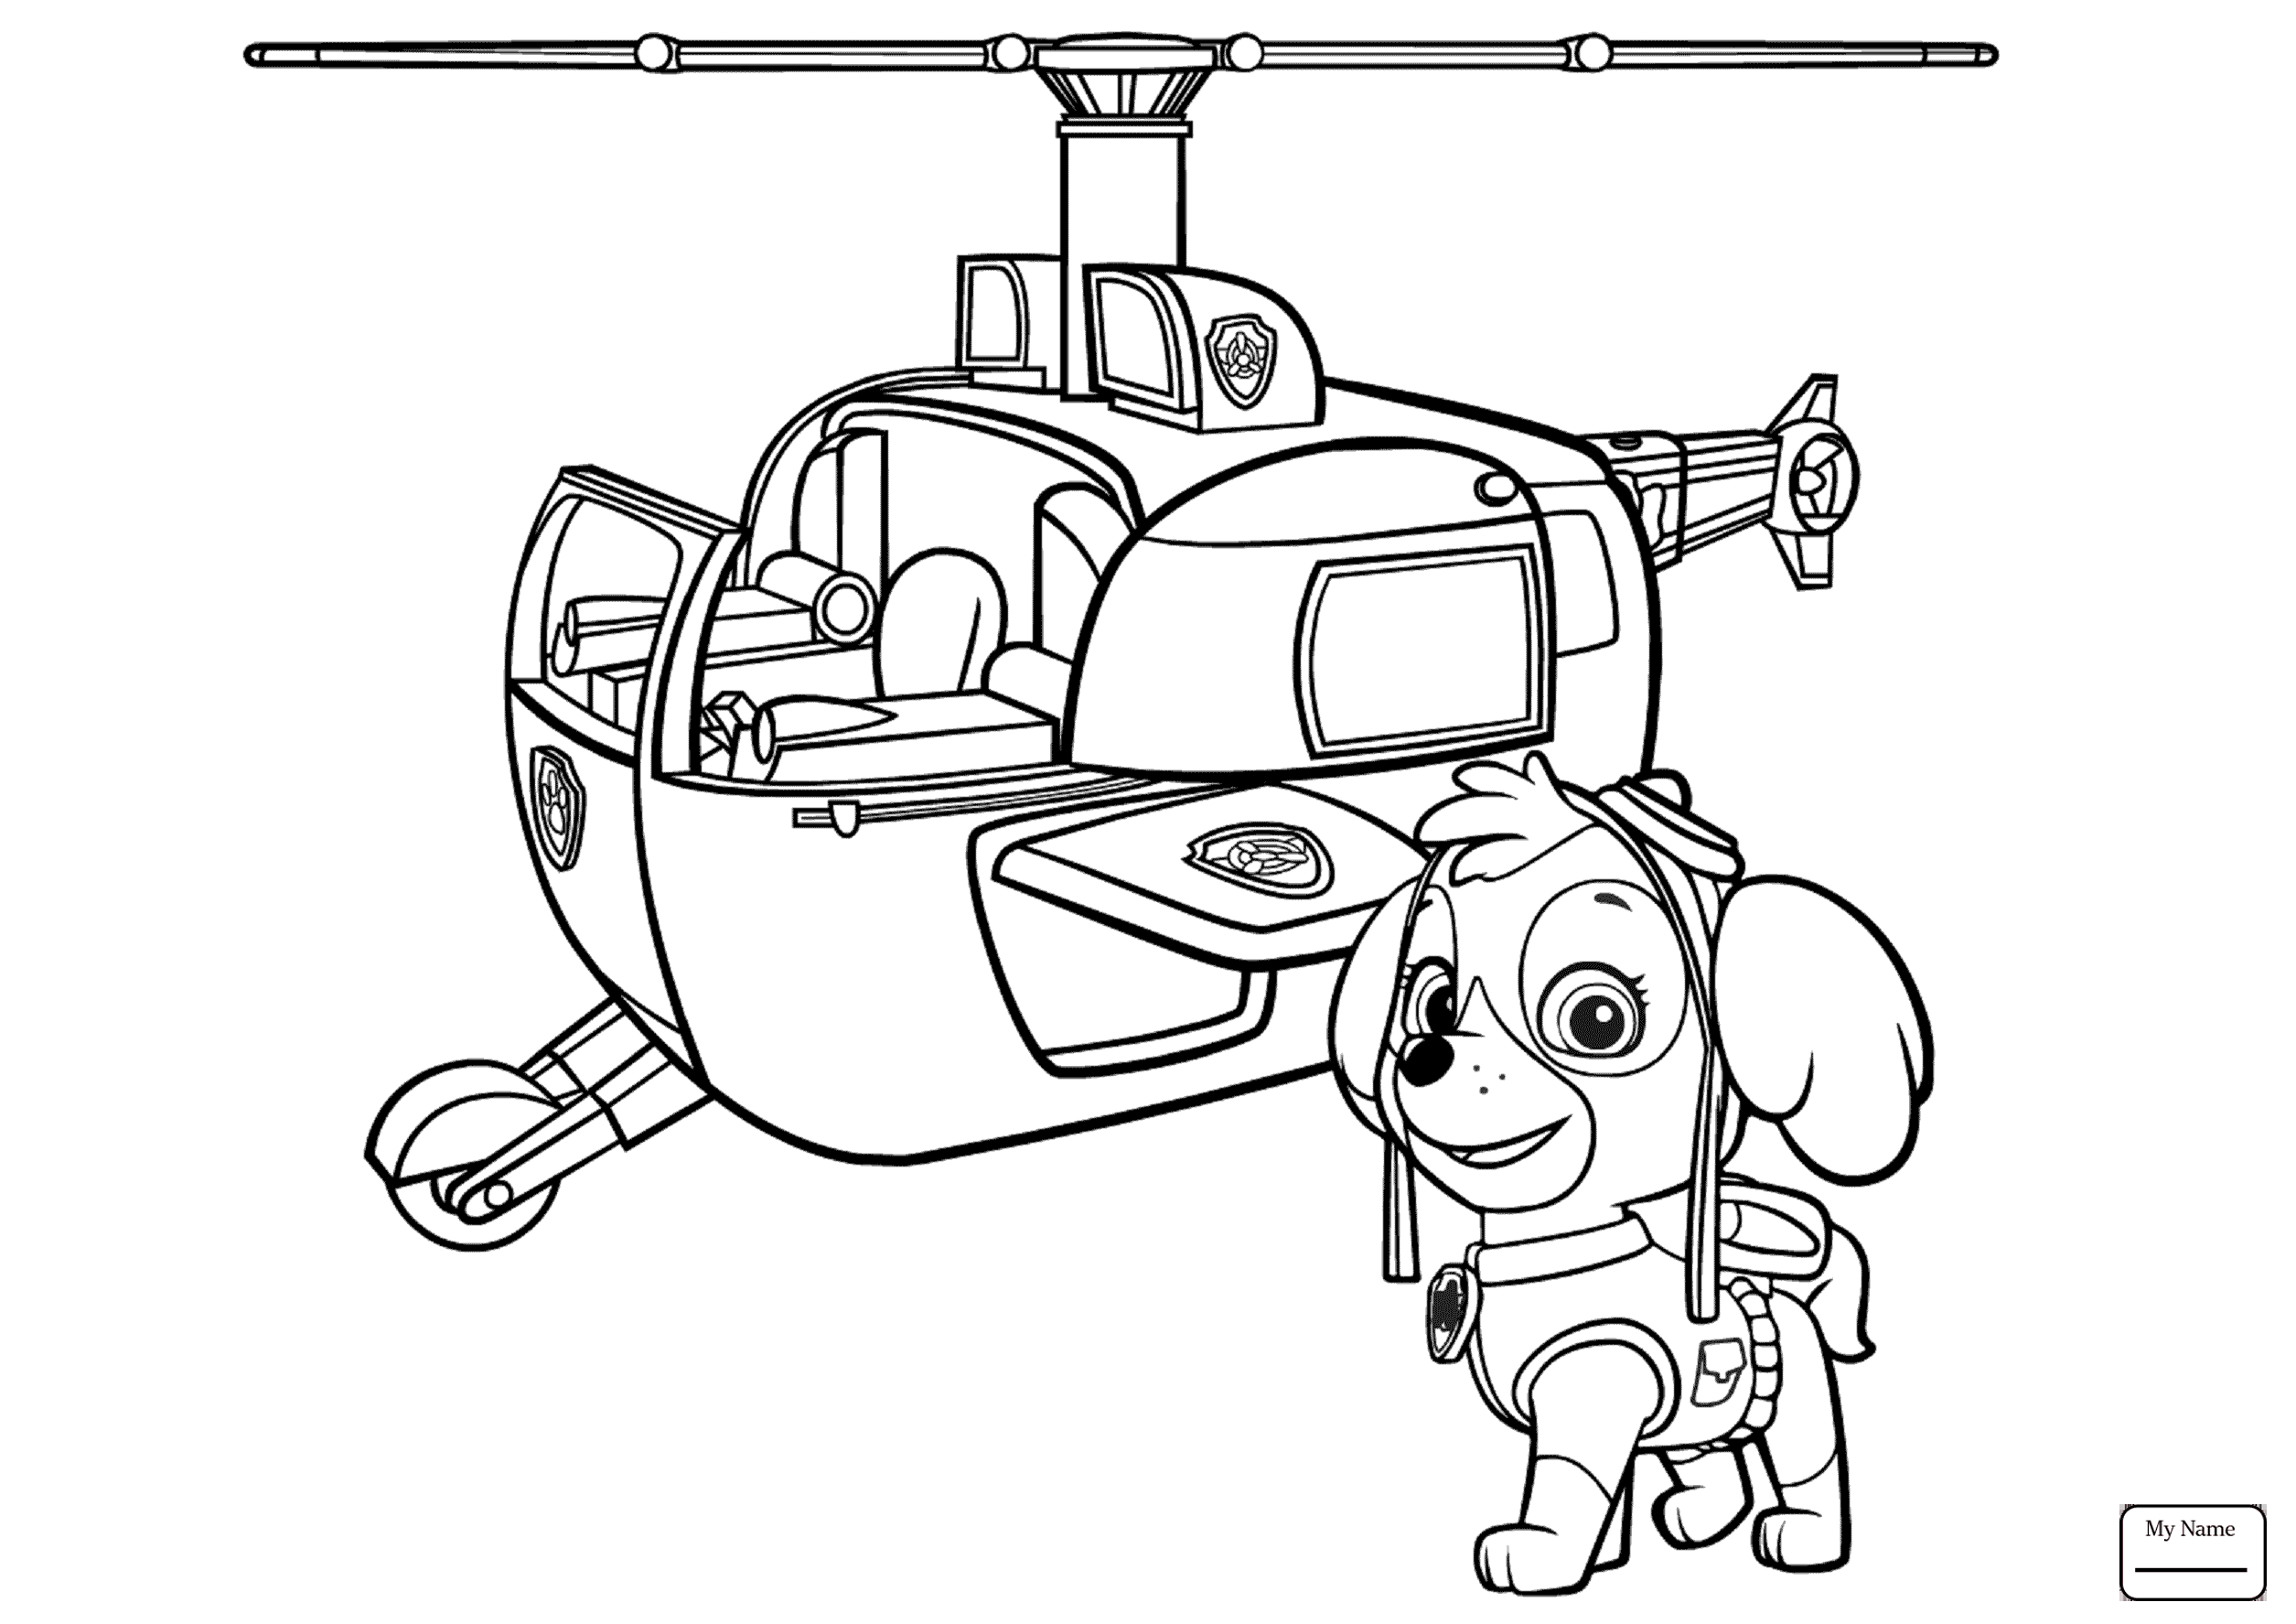 everest paw patrol coloring everest drawing at getdrawings free download patrol everest paw coloring